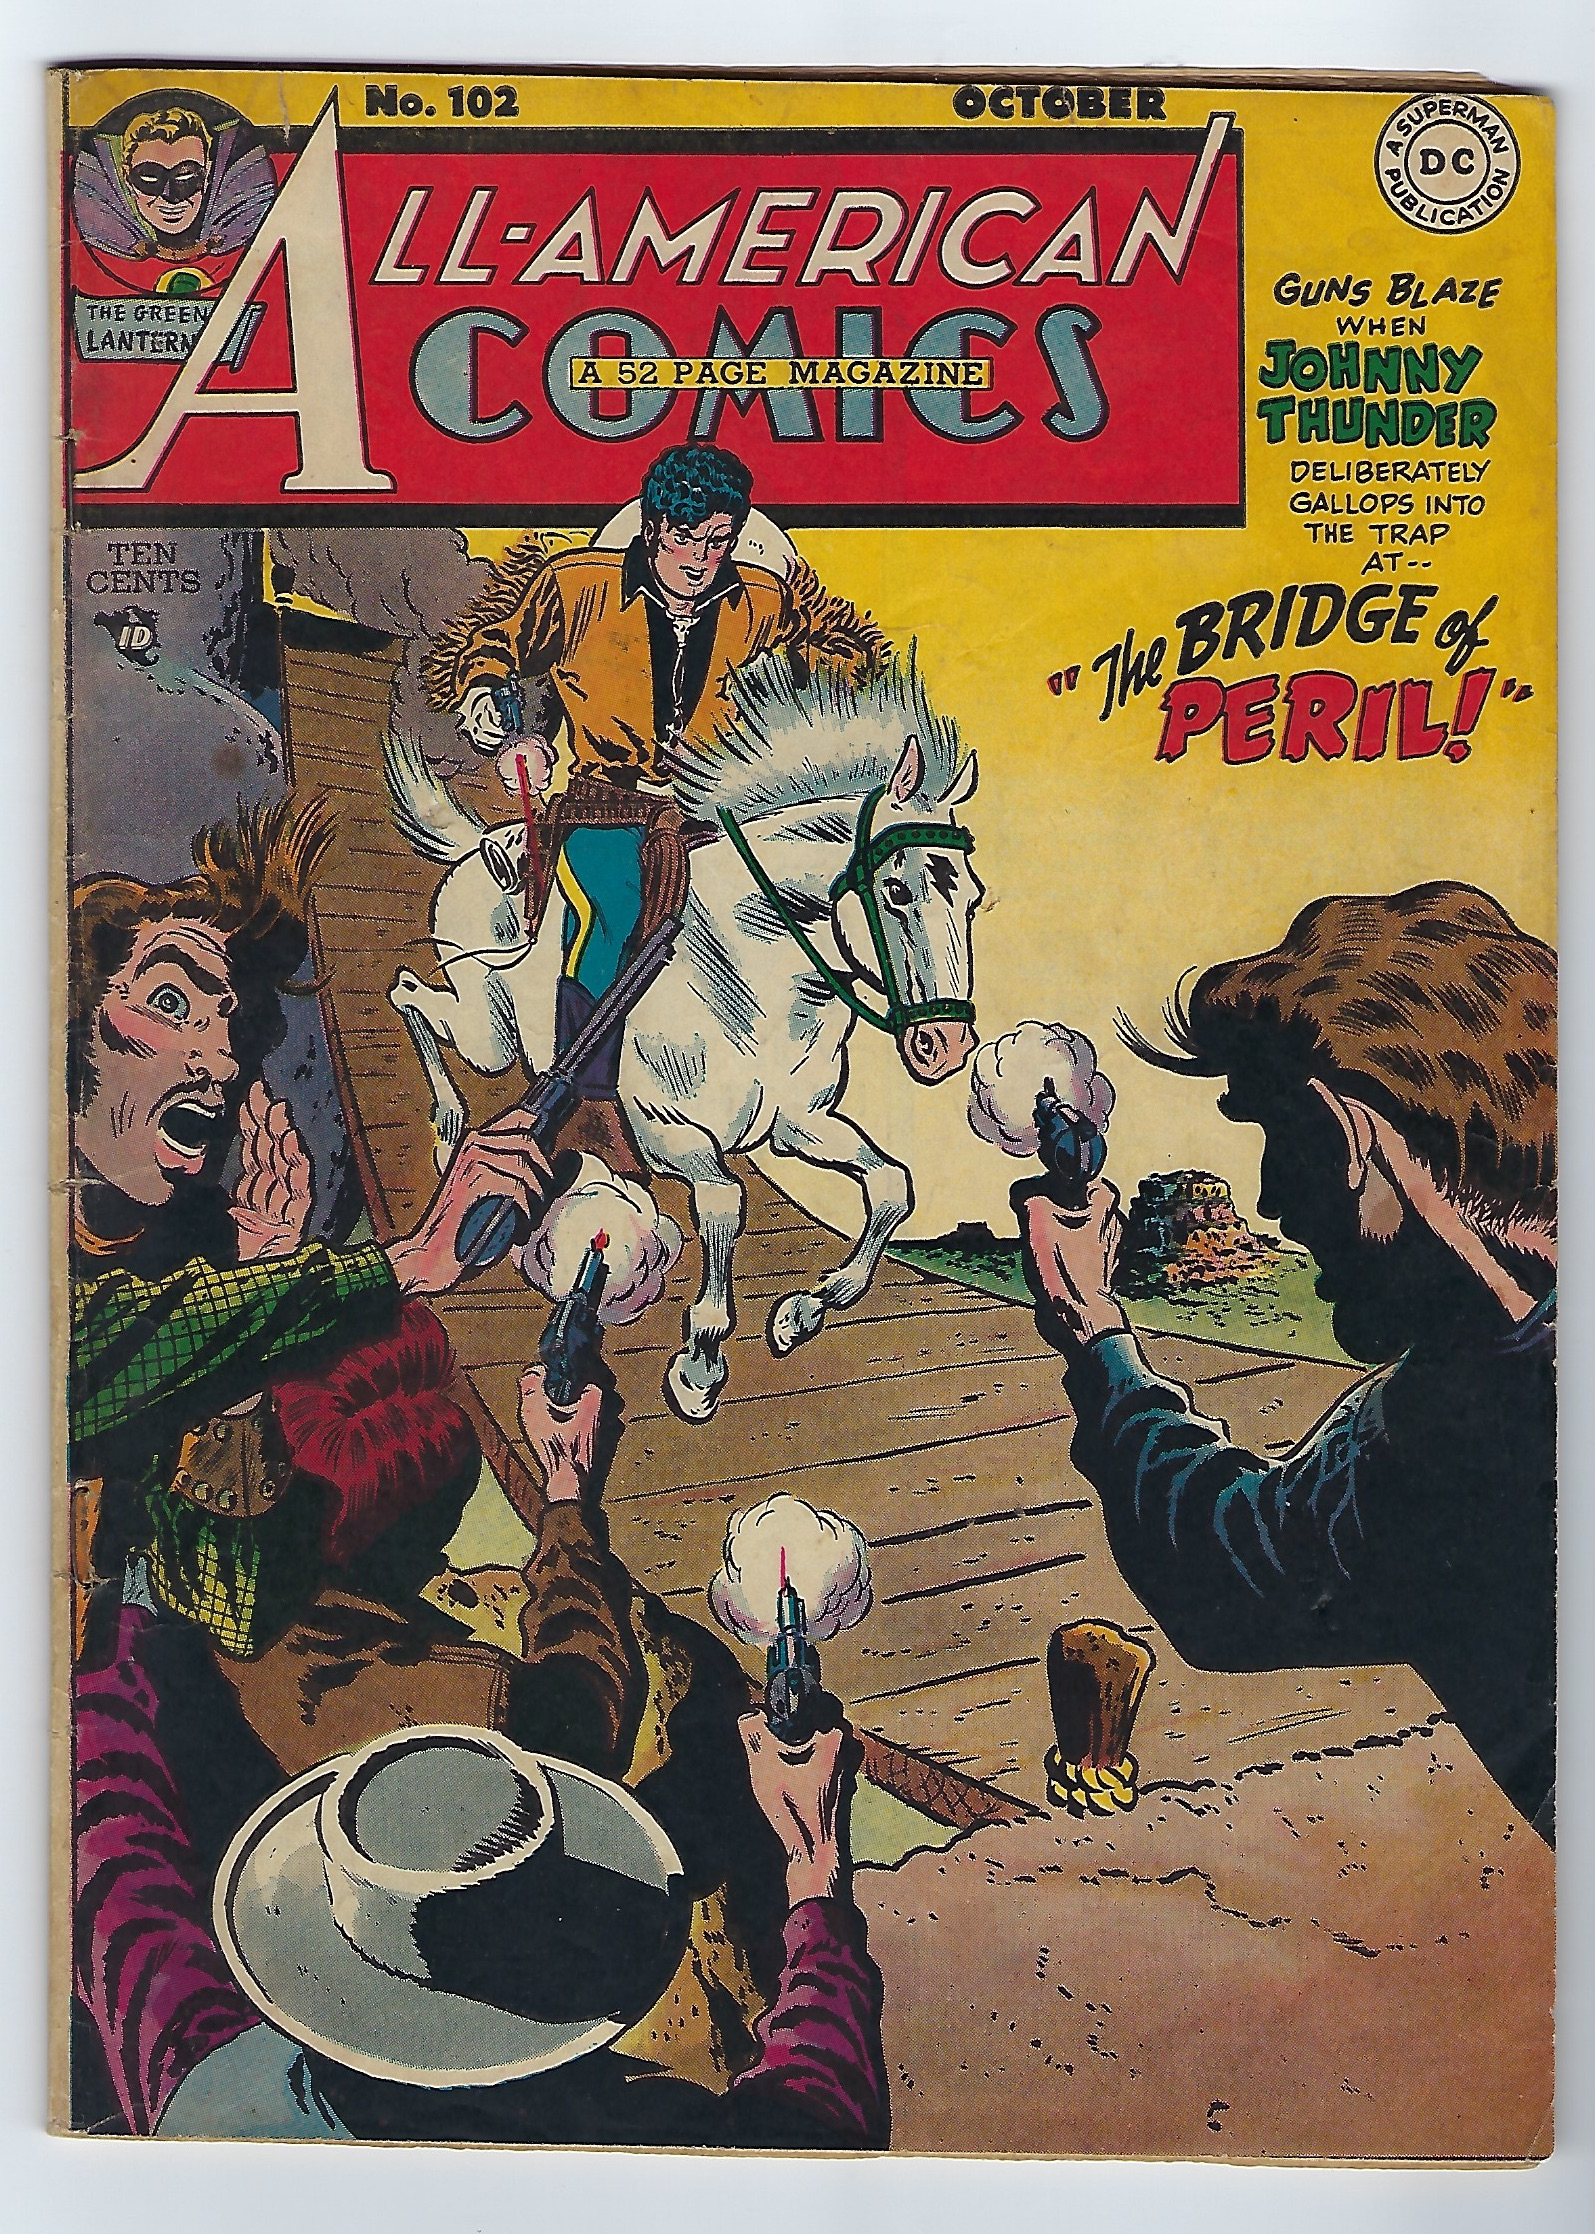 1948 DC All-American Comics #102: Scarce final issue, 6.0 (FN)